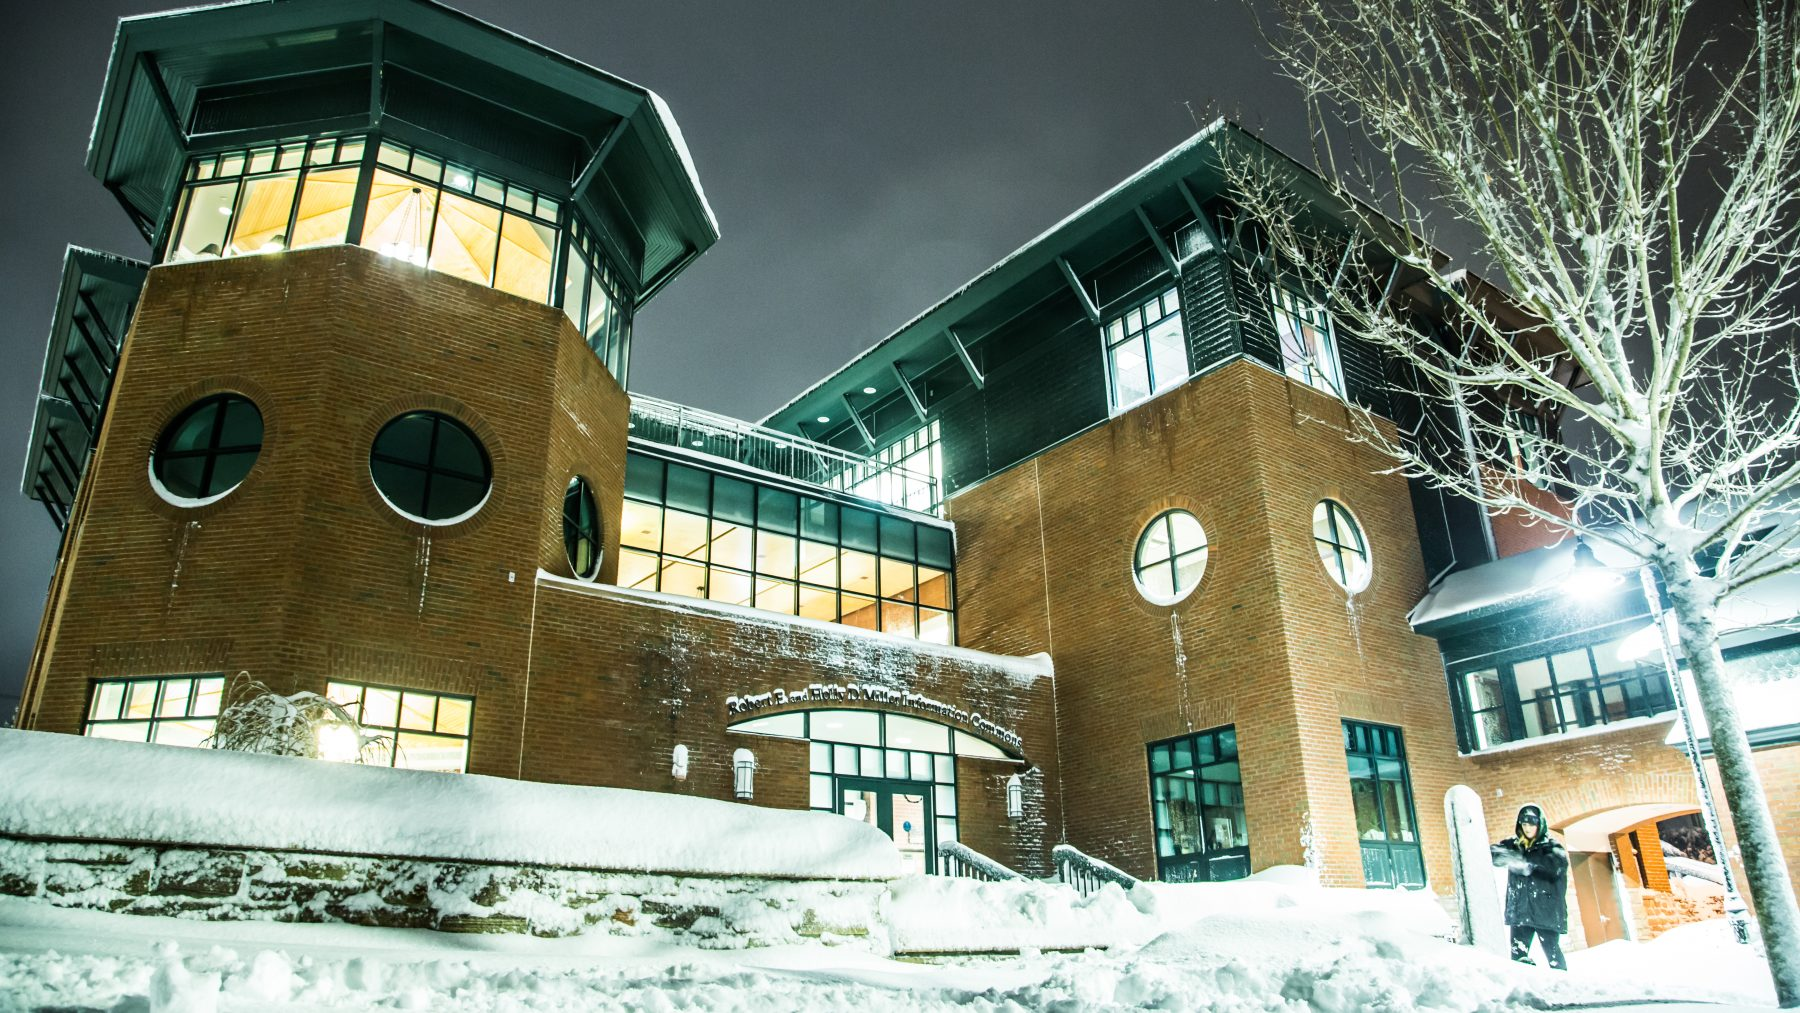 Champlain campus building with lights on and covered in snow